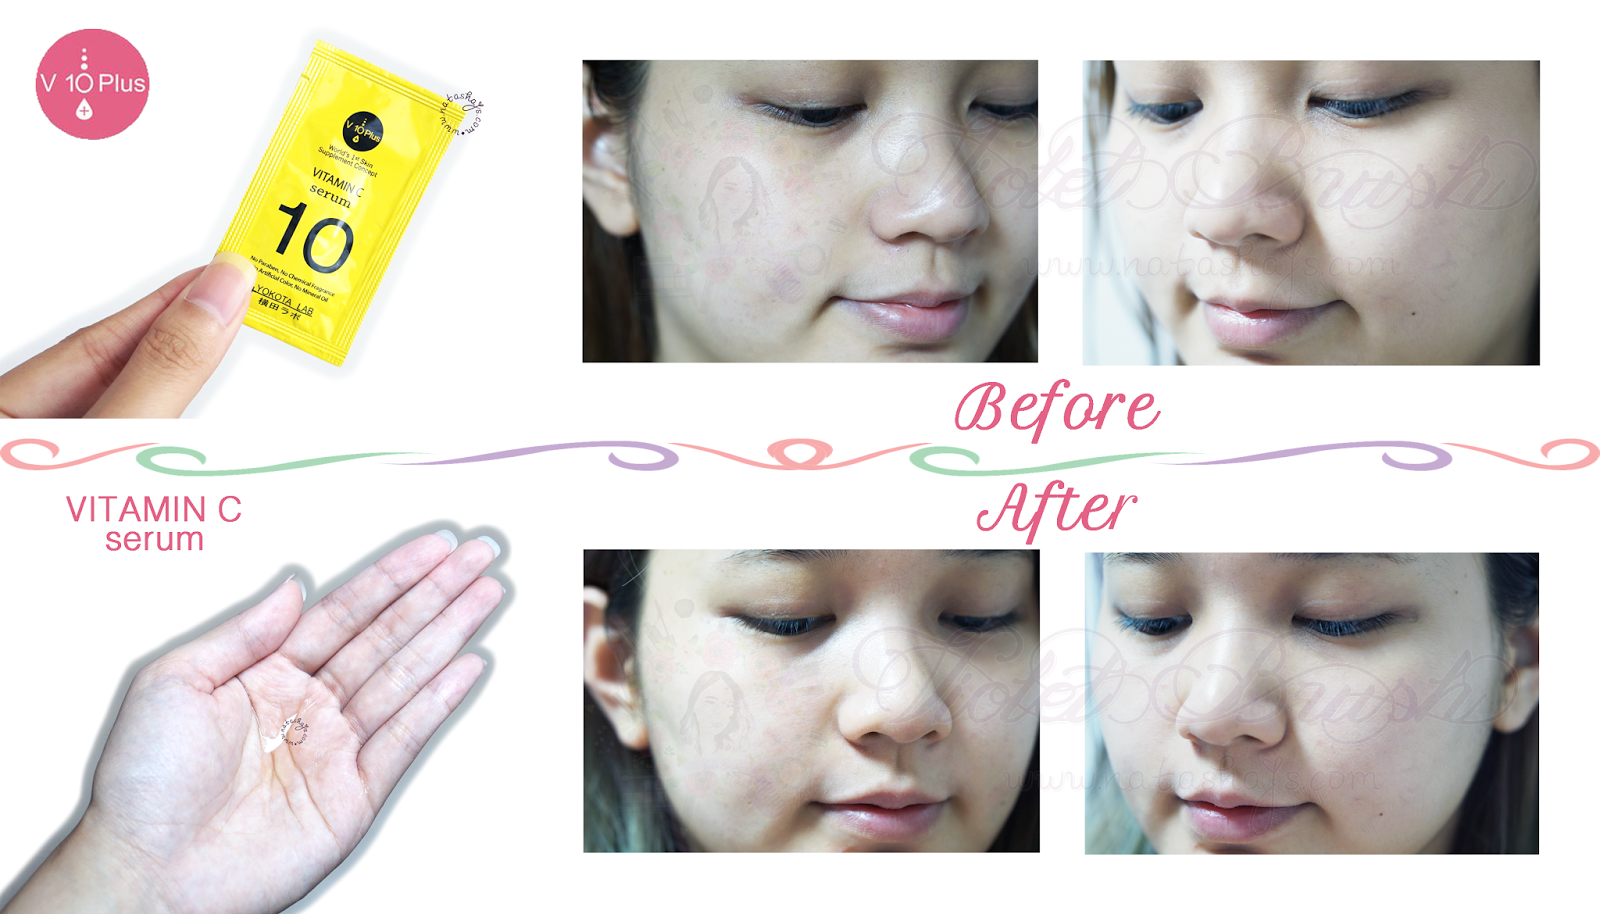 v10-plus-serum-acne-treatment-series-review-vitamin-c-before-after-indonesian-beauty-blogger